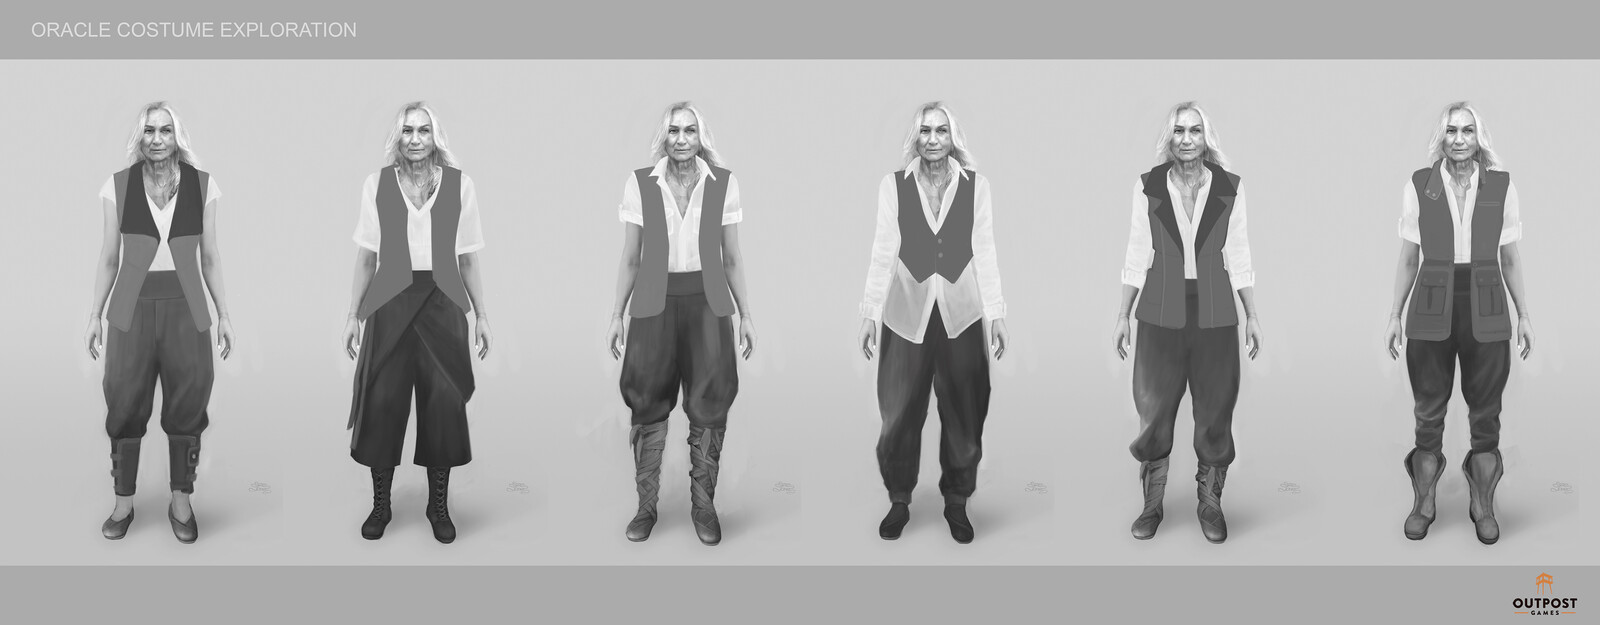 Oracle - Costume Part & Layer System Design (Vest)